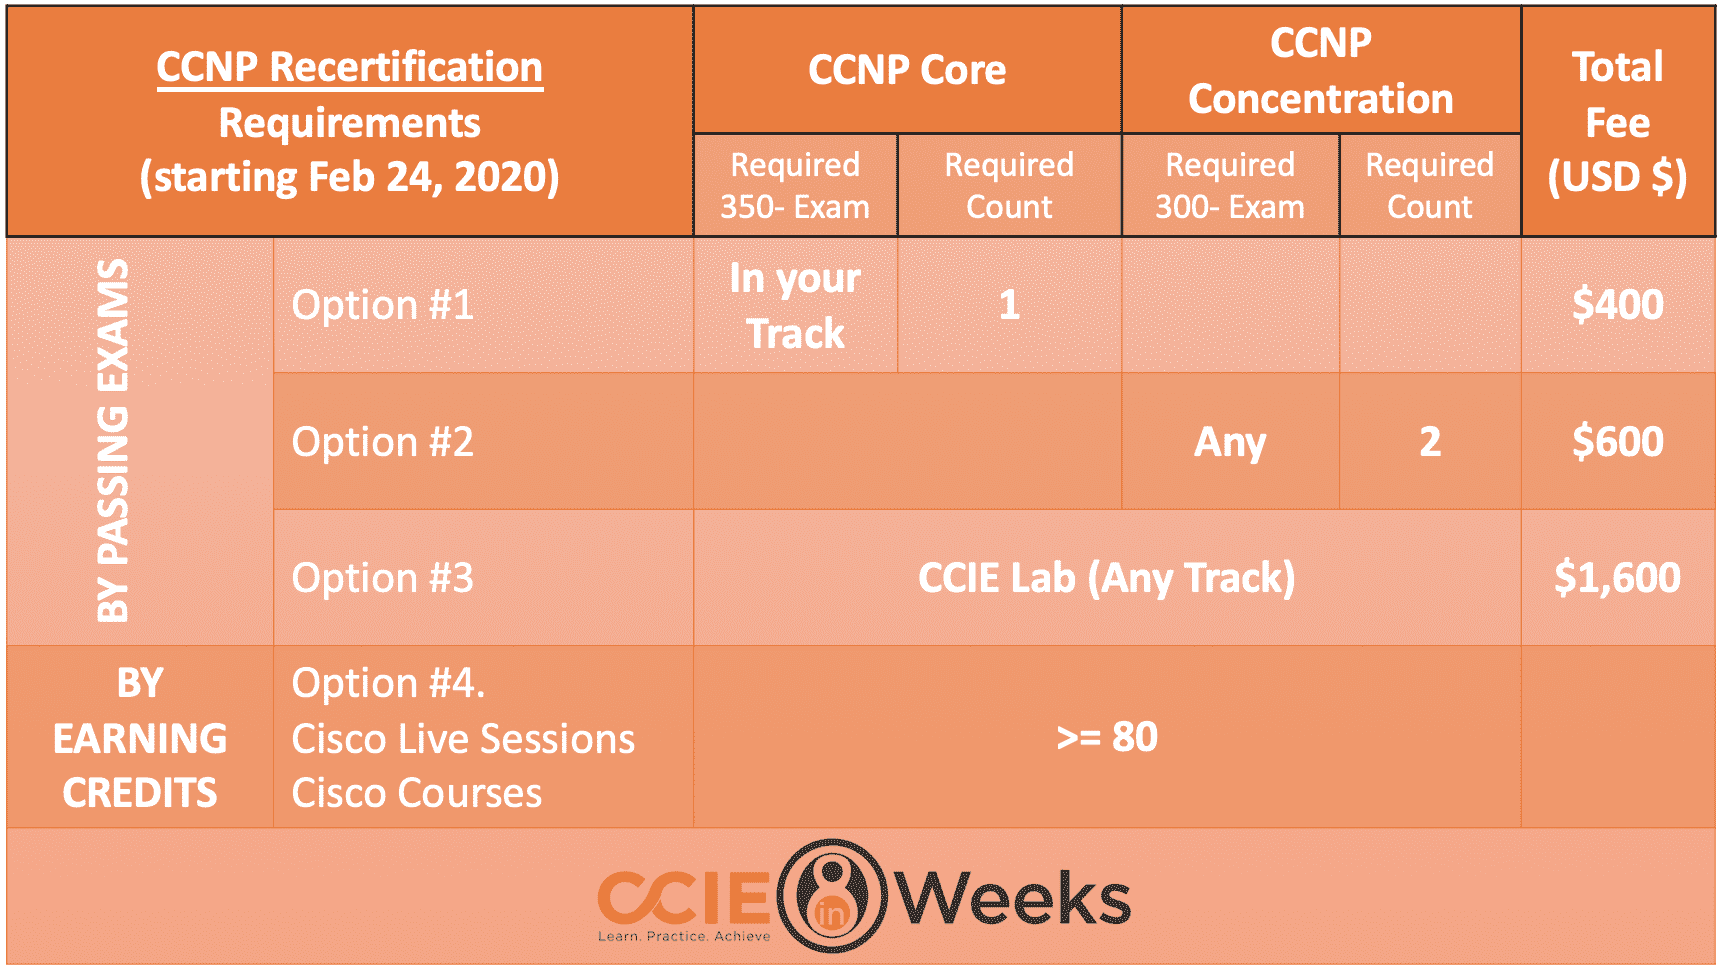 cisco next-level ccnp recertification requirements and options